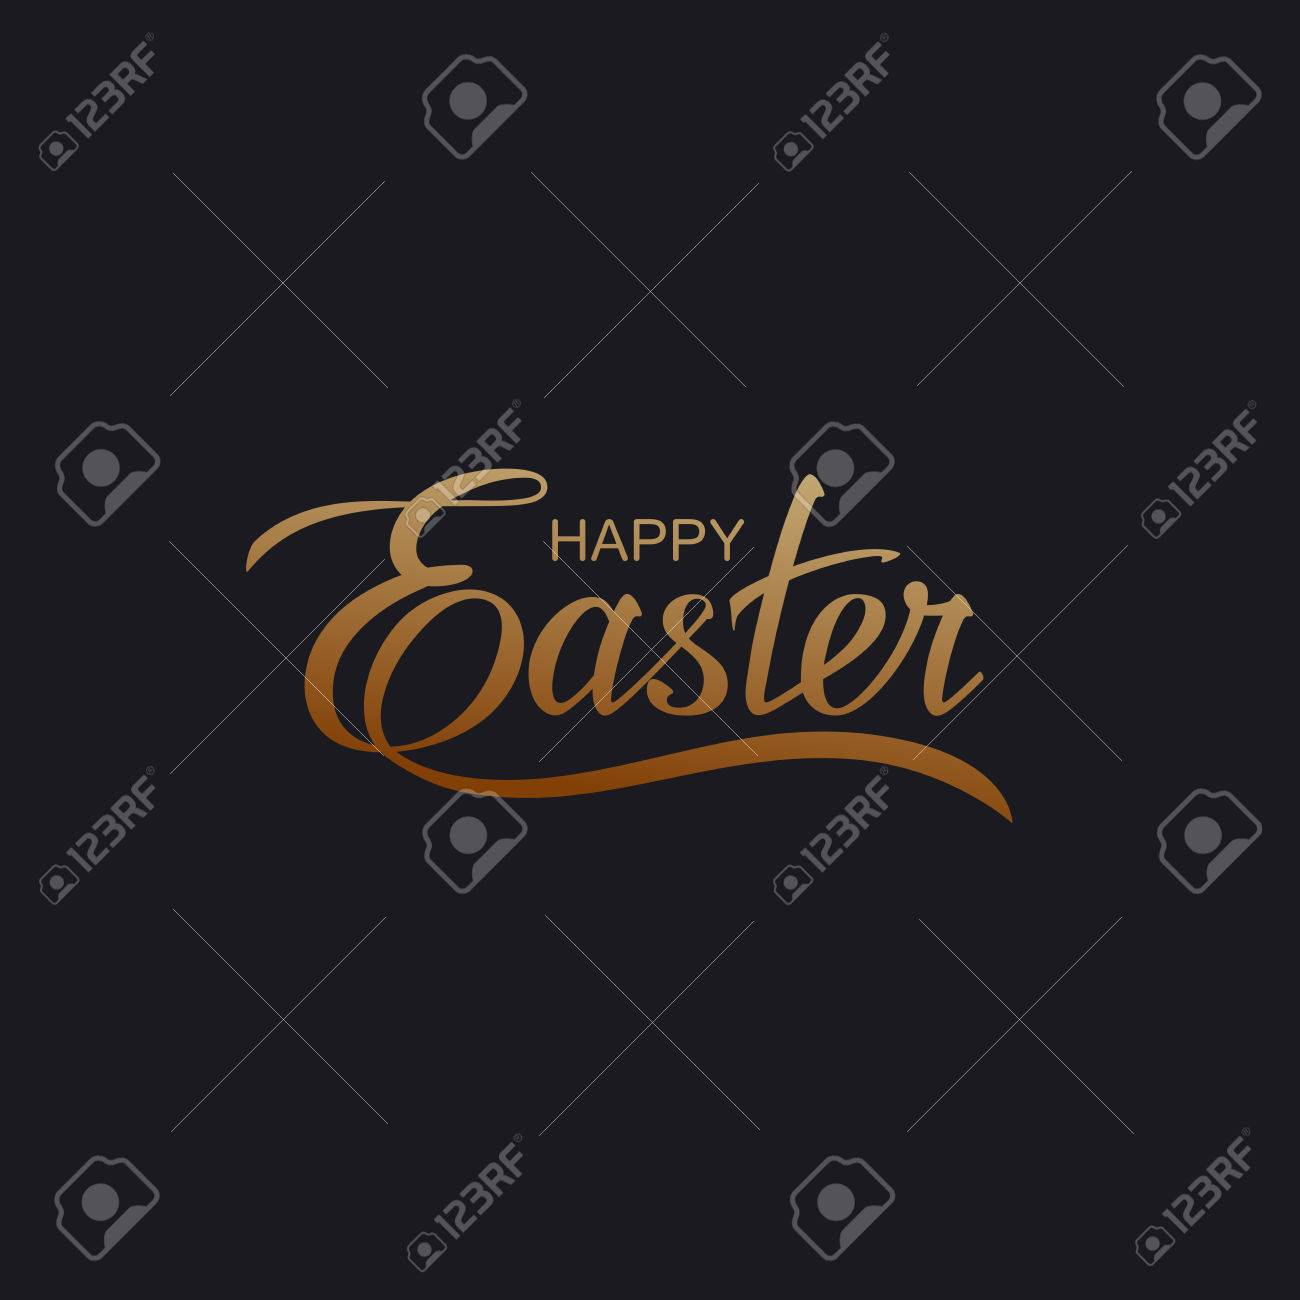 Happy Easter. Vector Illustration Of Holiday Religious Easter Lettering - 52043400